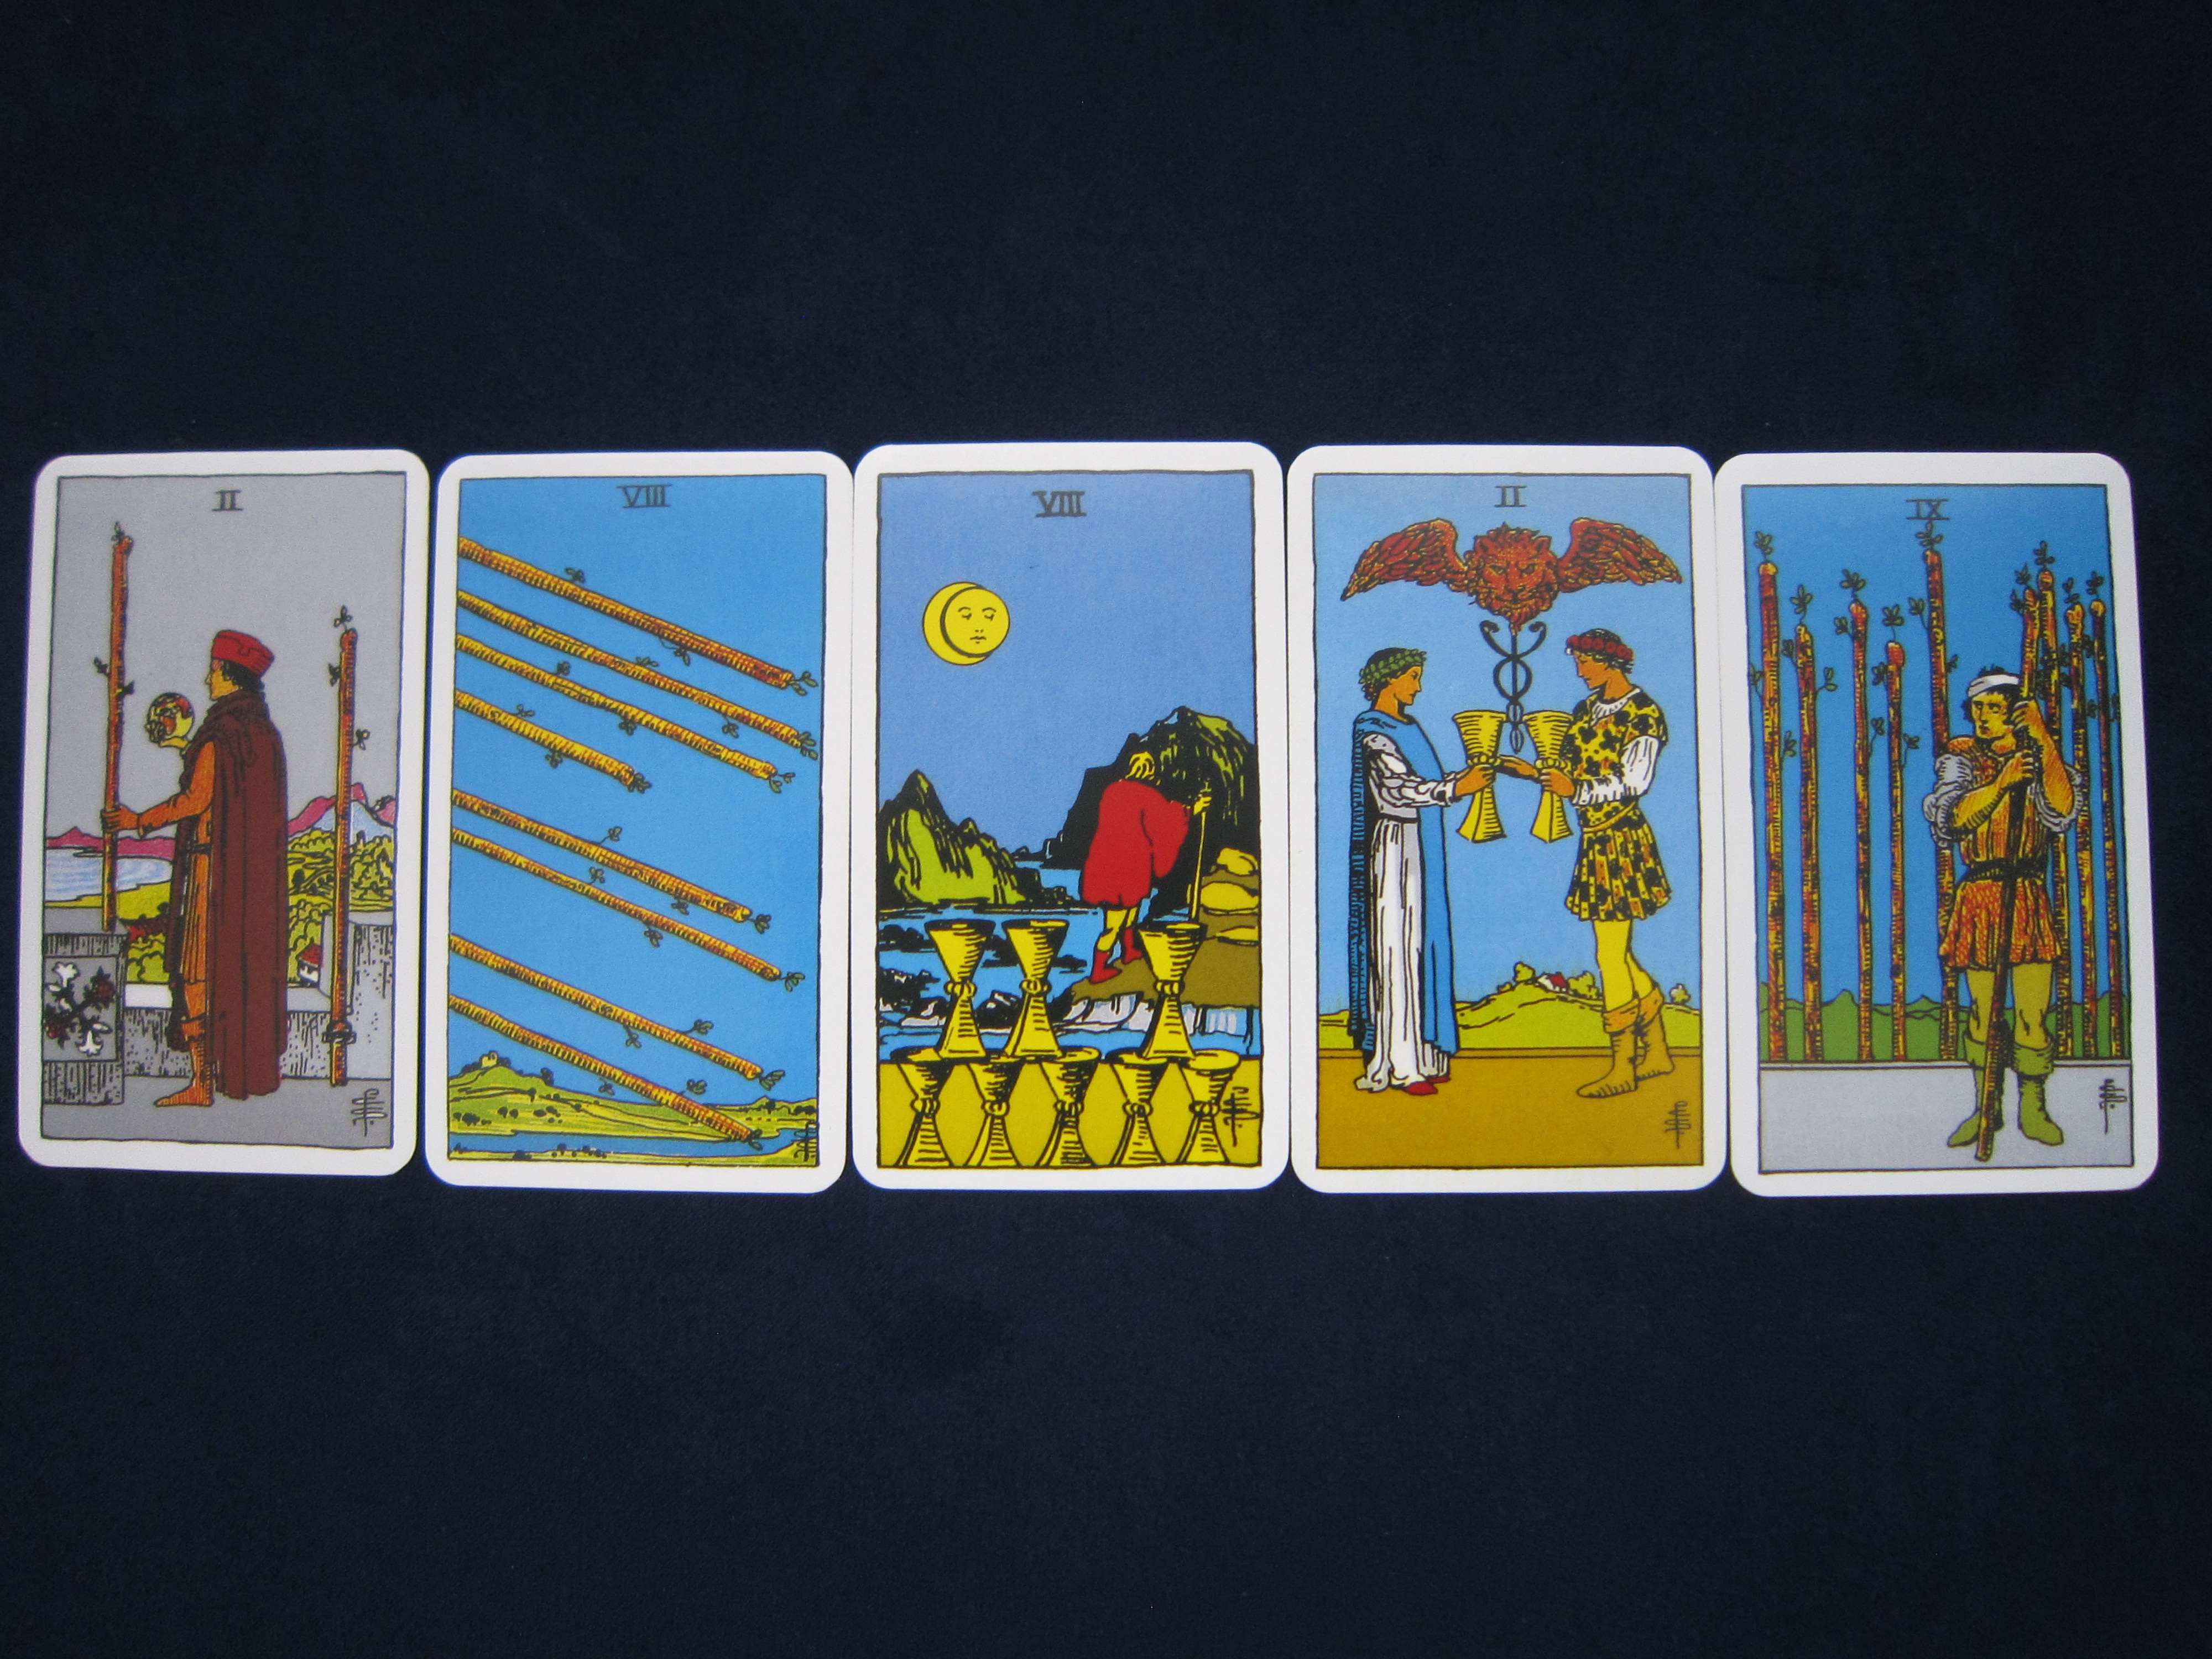 Five card tarot reading with the two of wands, the eight of wands, the eight of cups, the two of cups and the nine of wands.